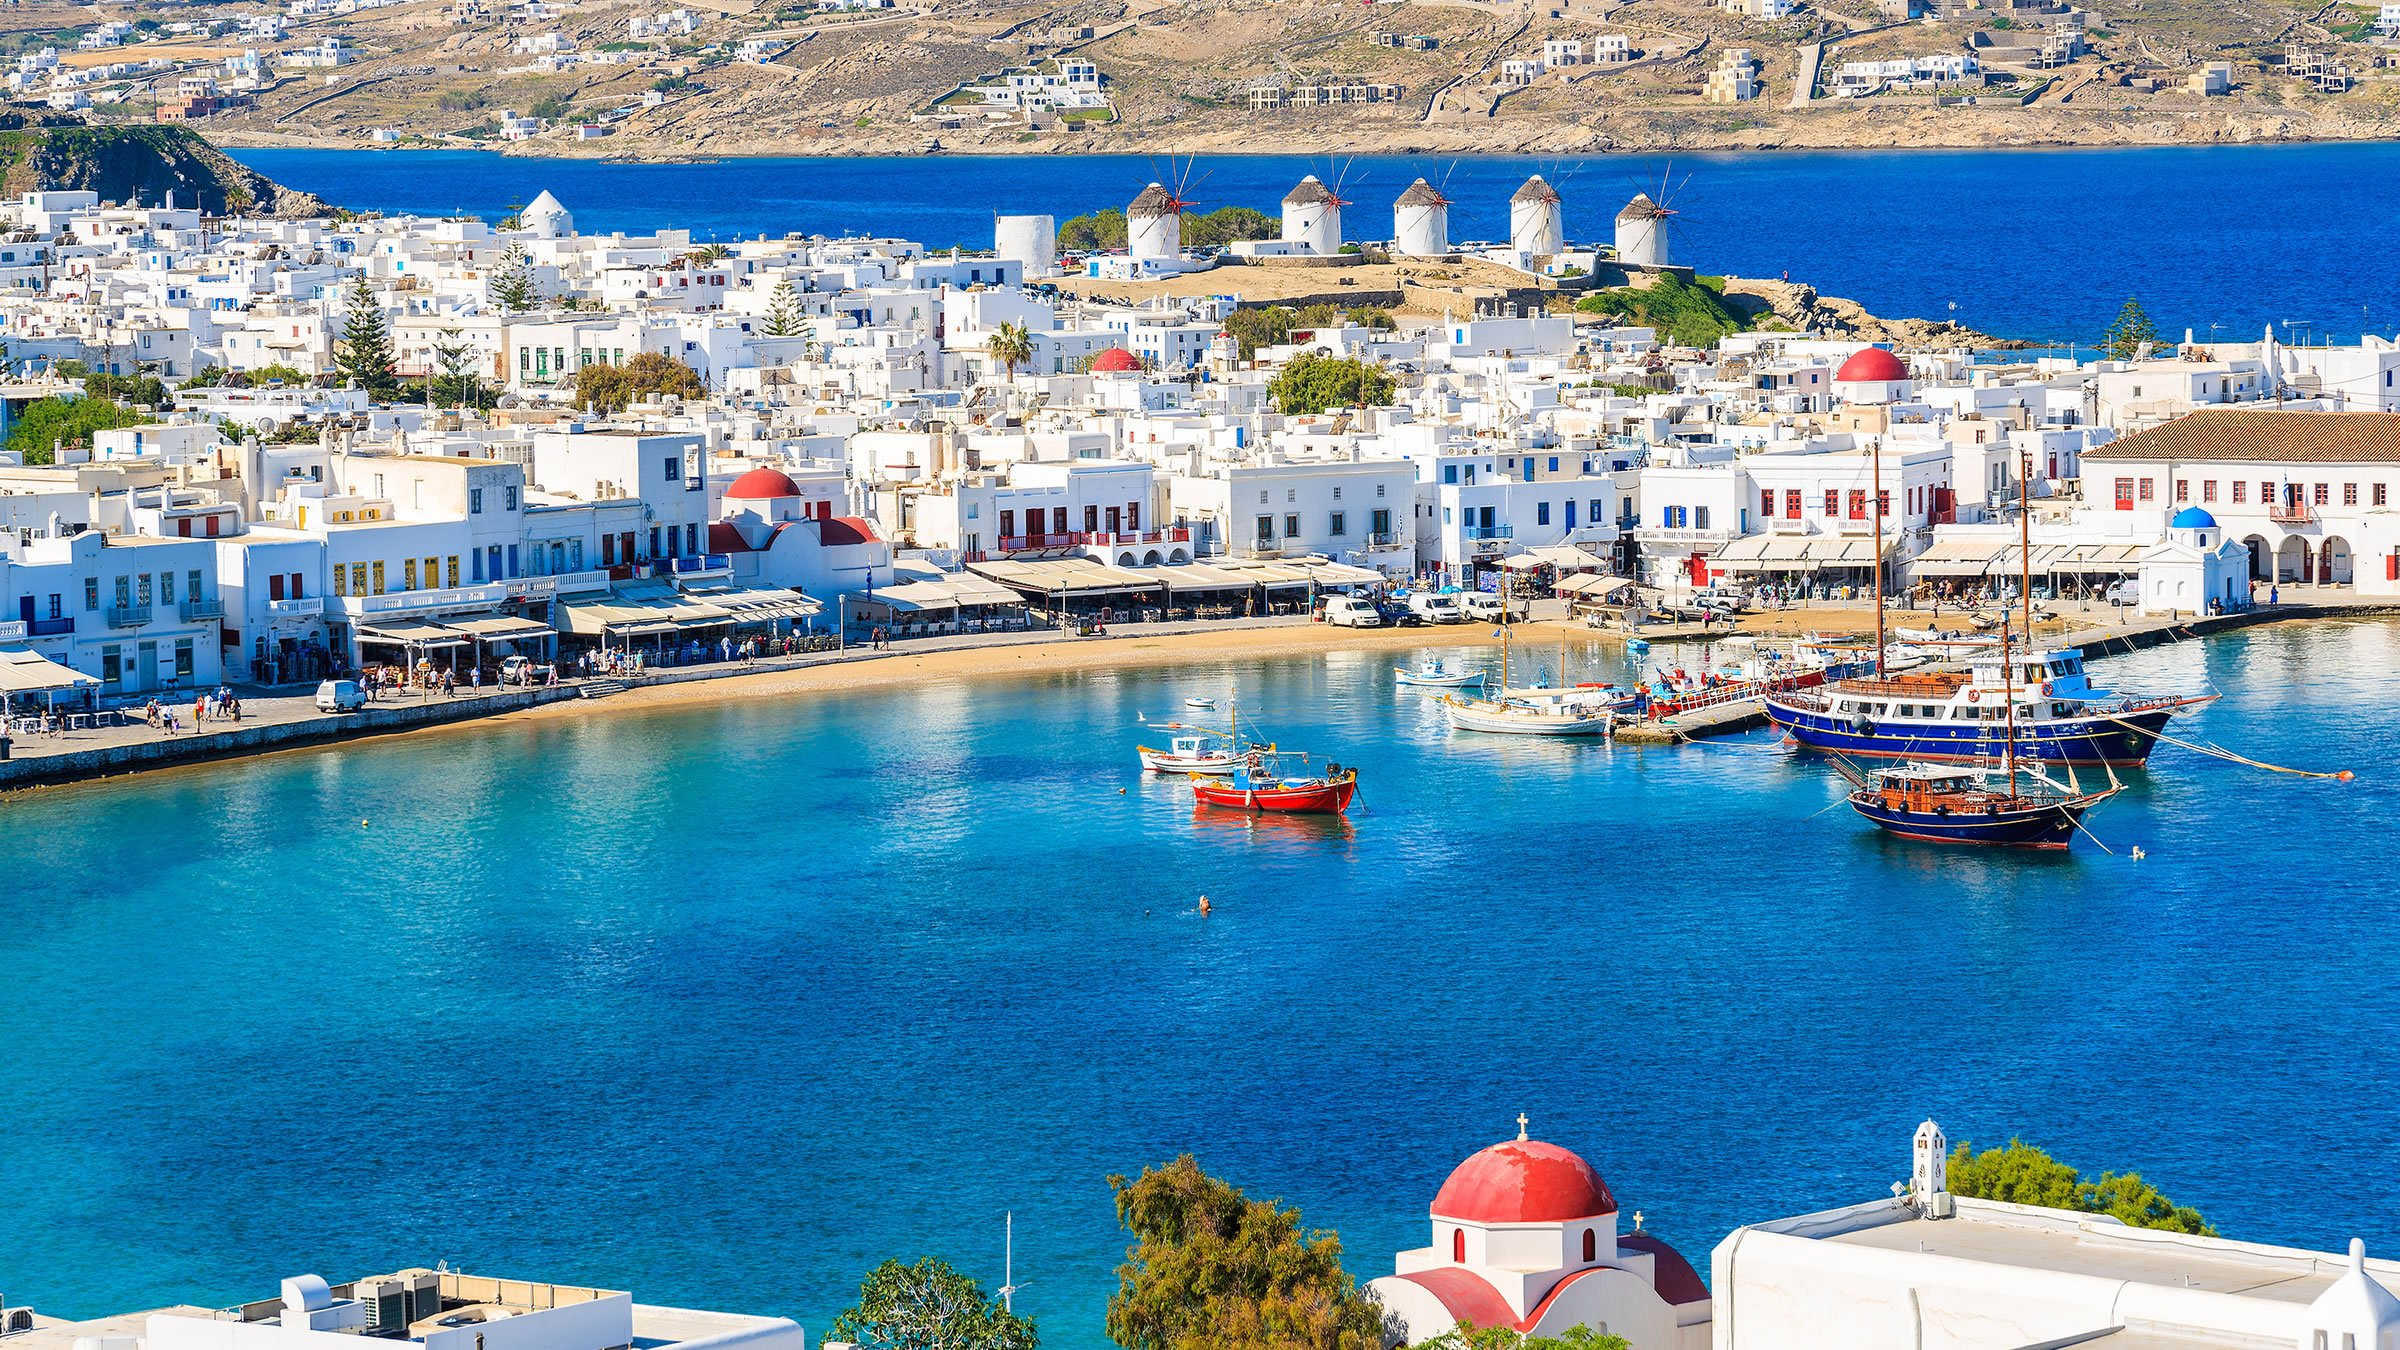 Destino gay: Mykonos